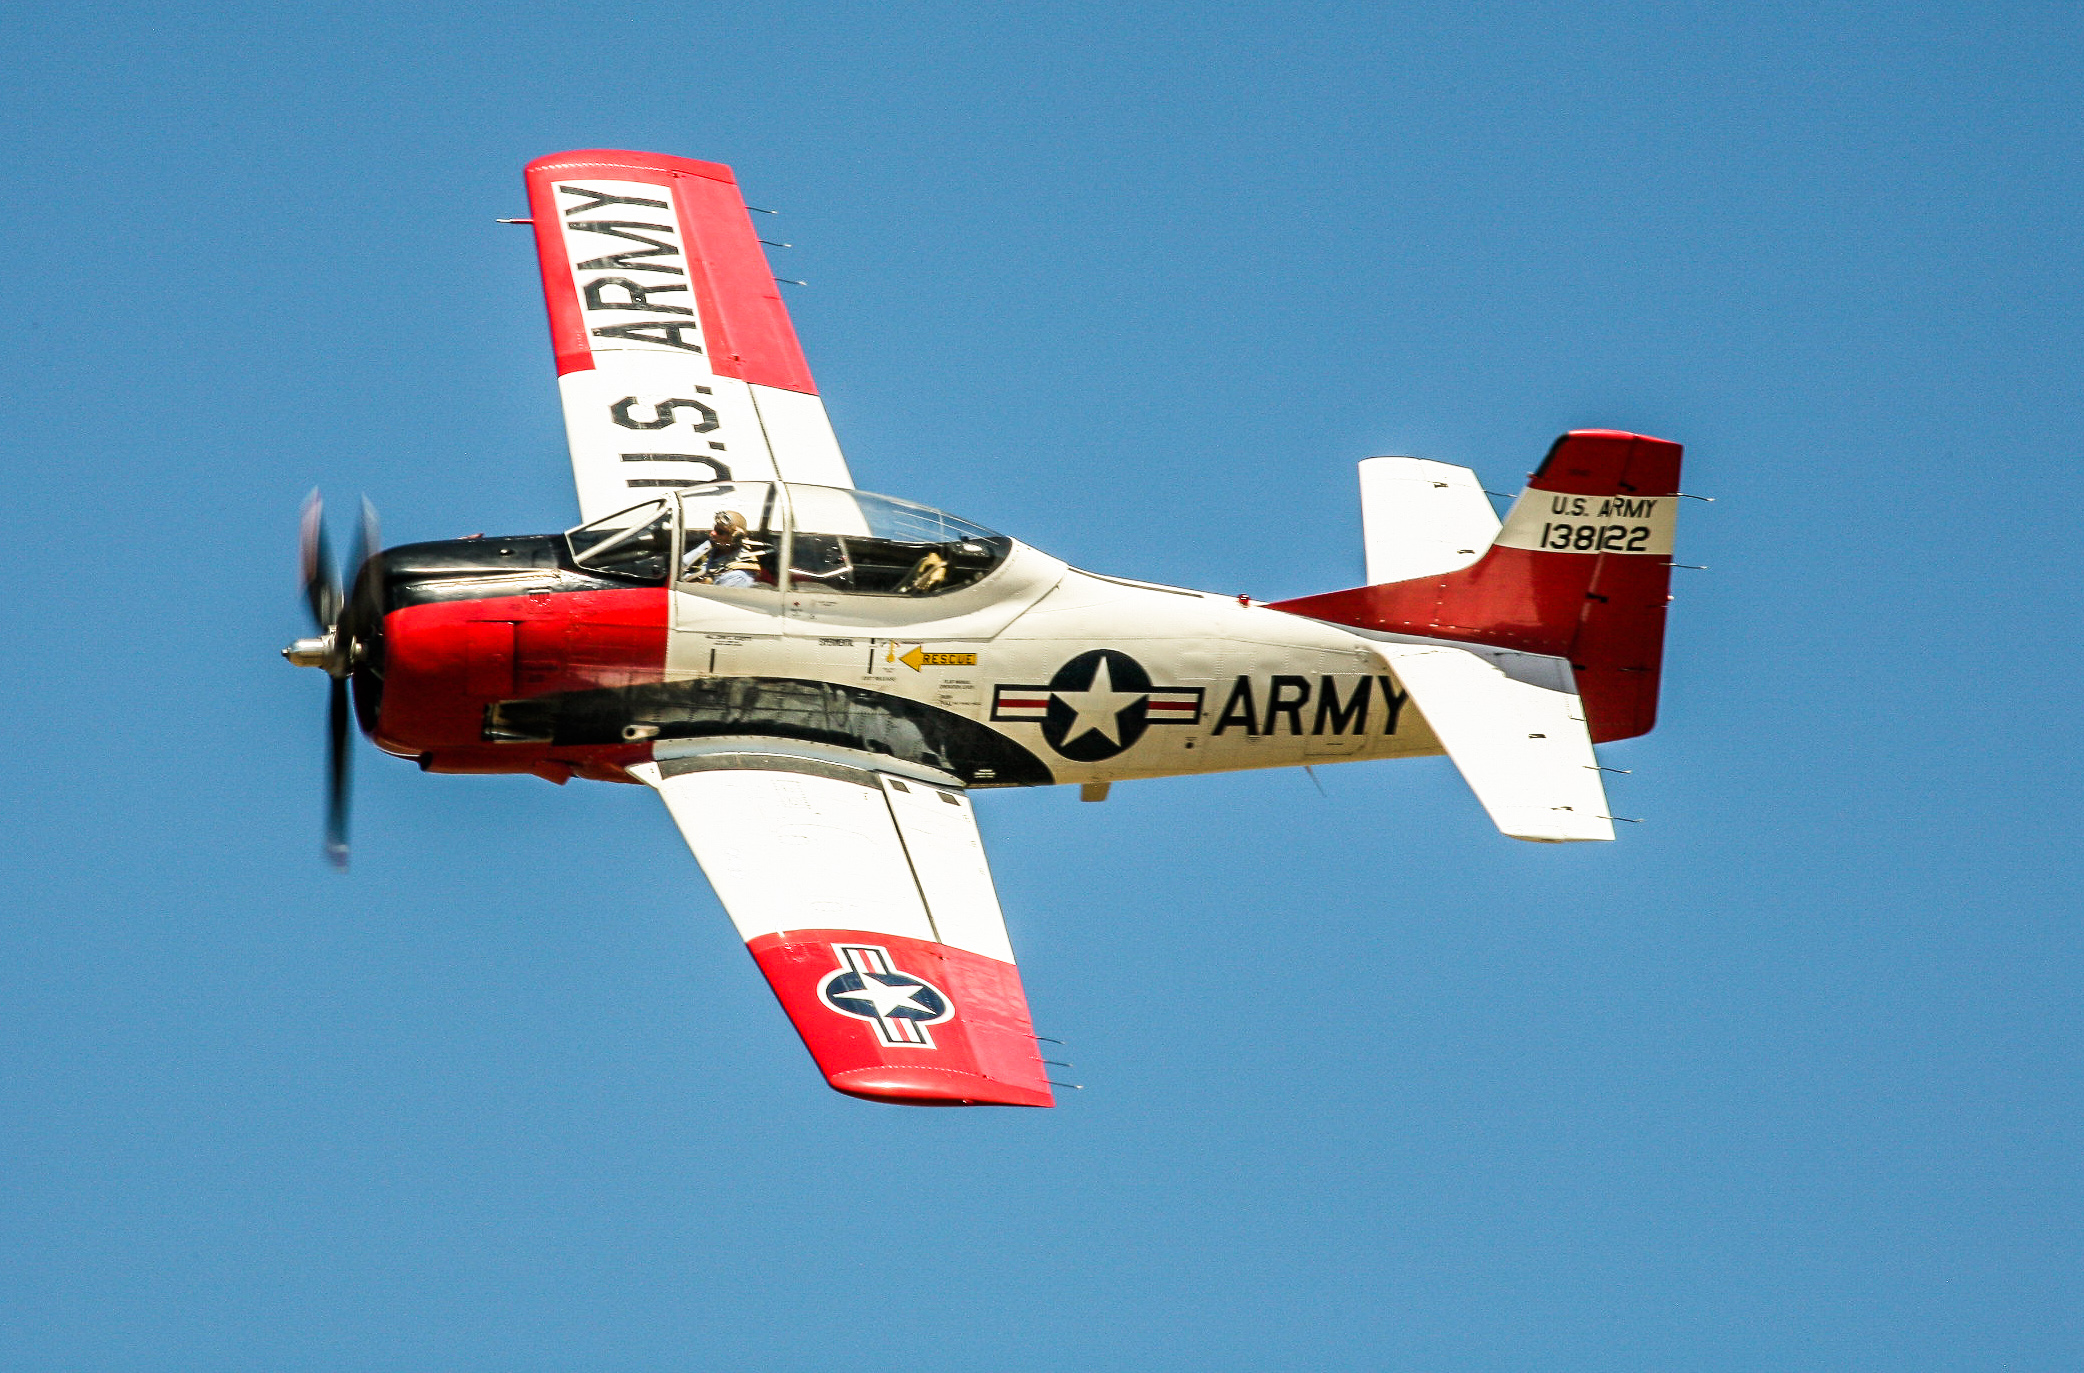 Cameron Rolf Smith in his T-28. (photo by Phil Buckley)